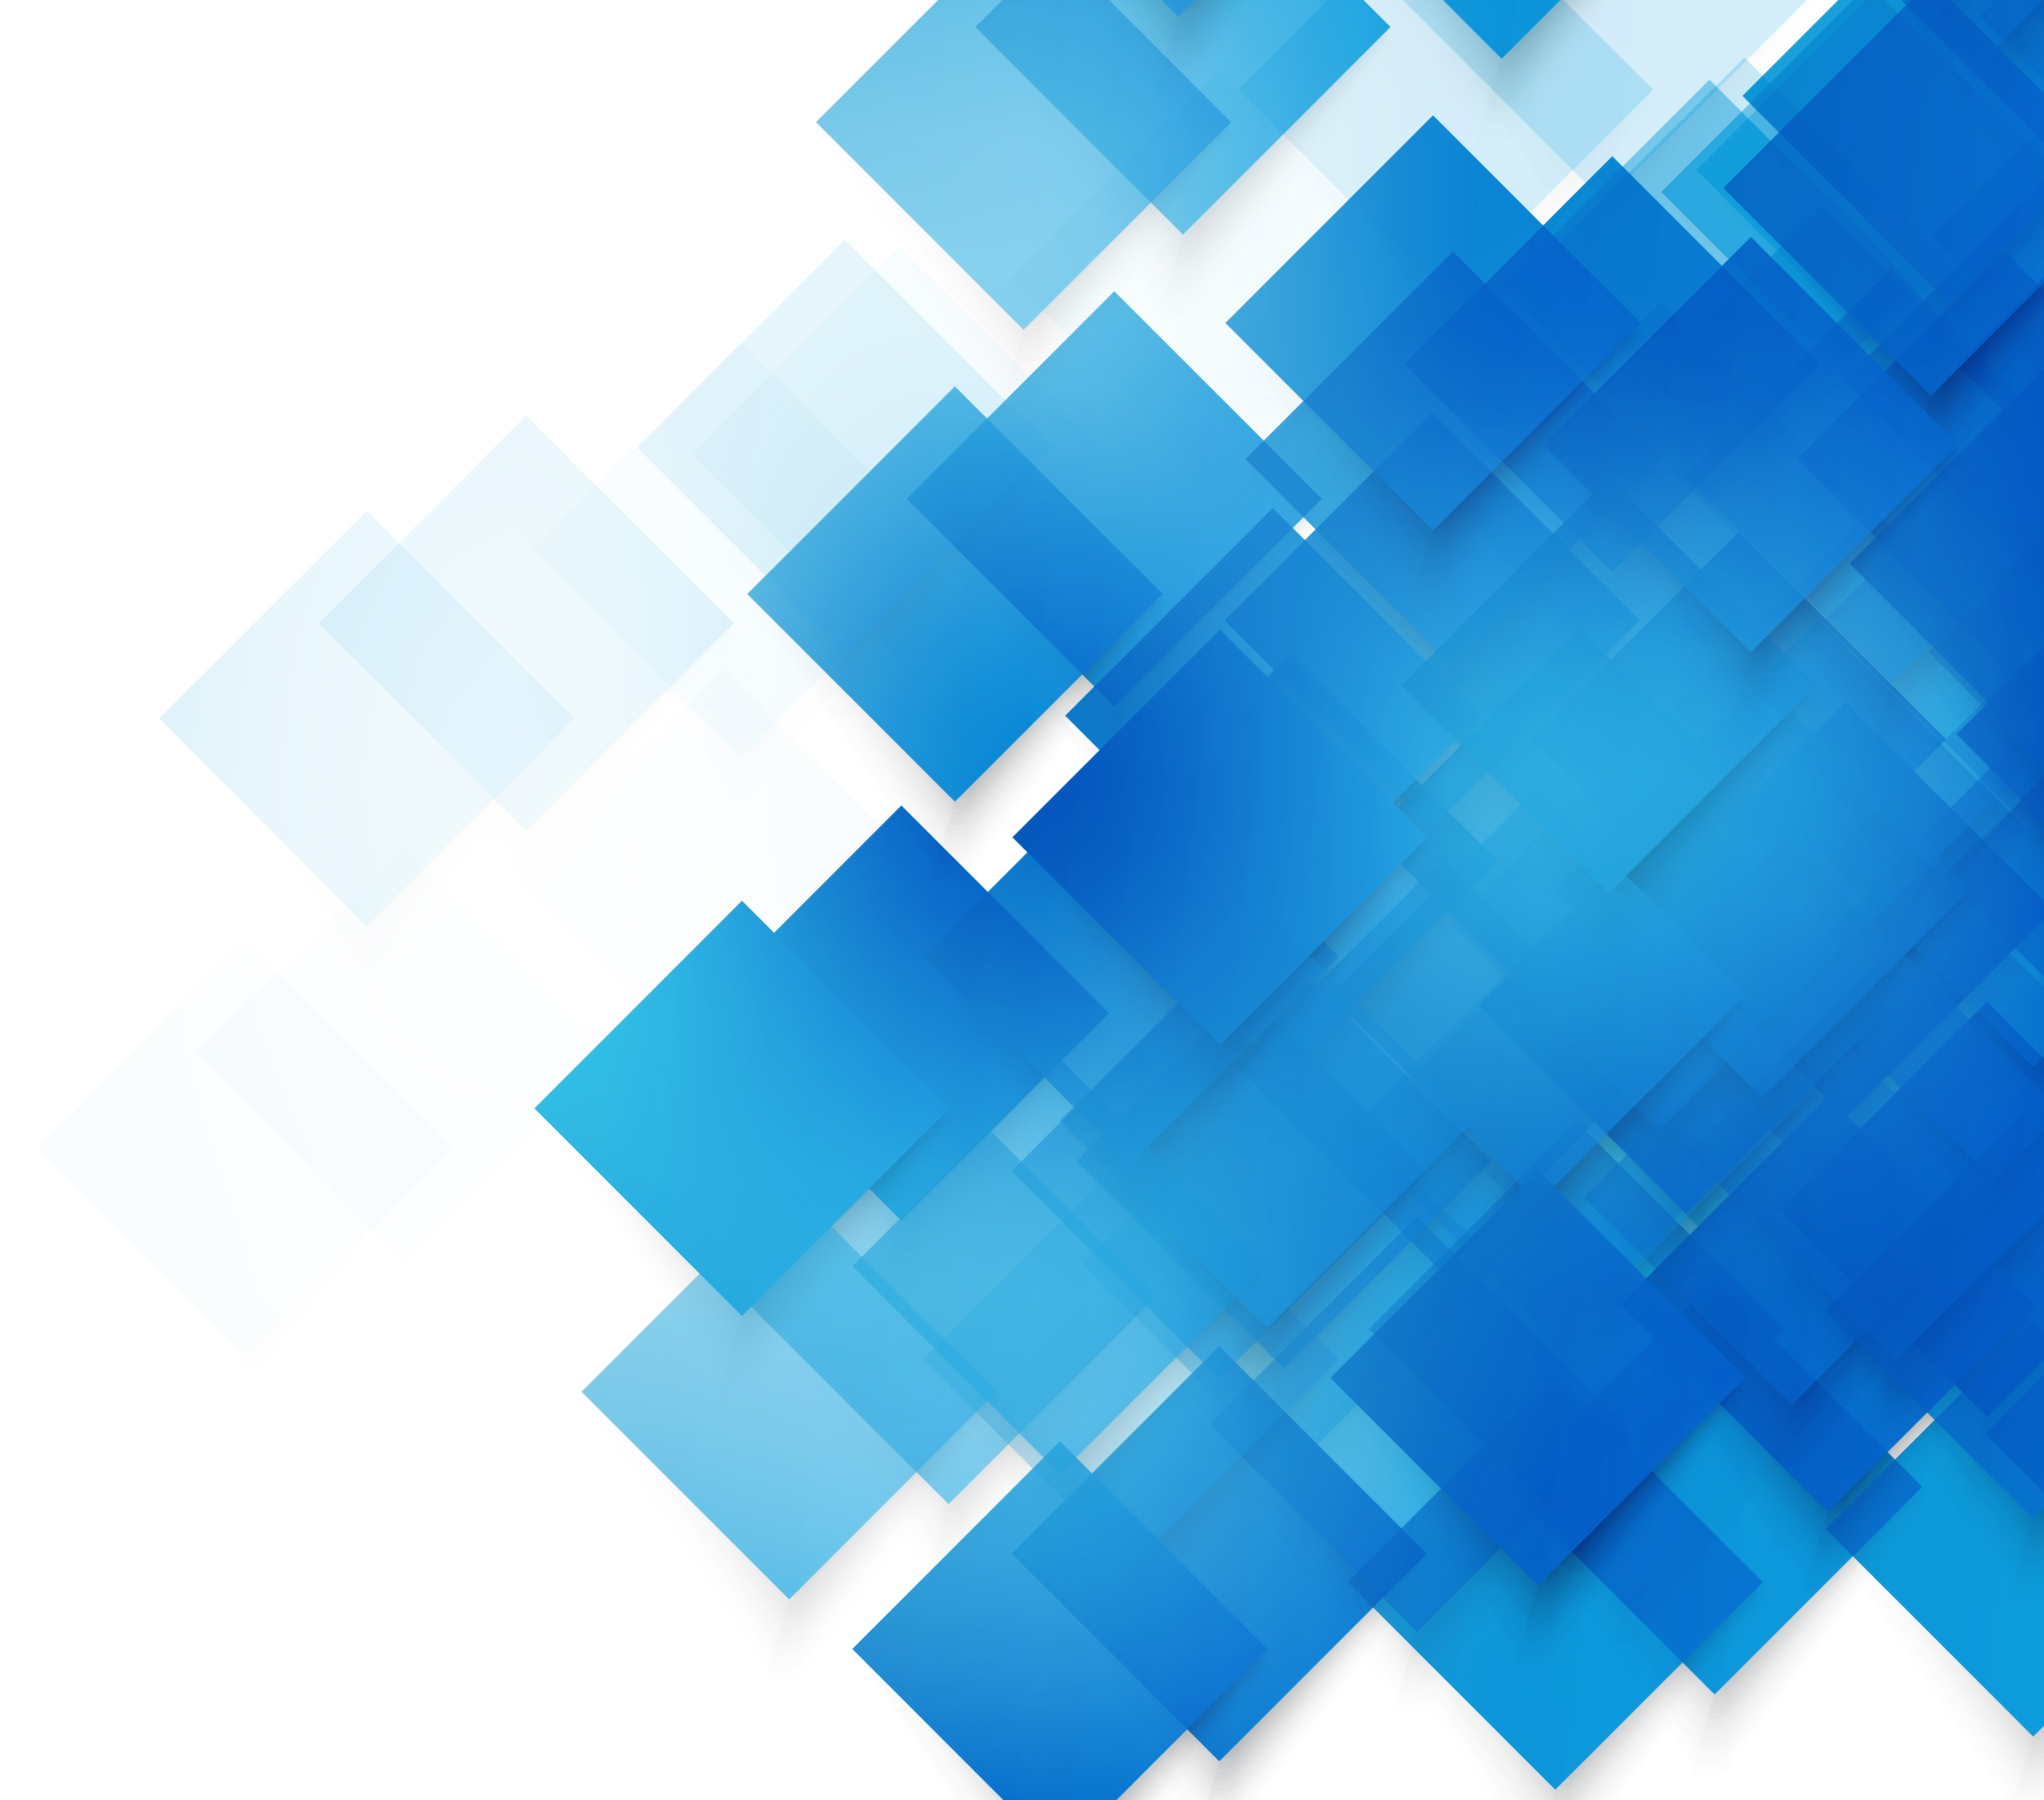 Abstract Blue Texture 4k, HD Abstract, 4k Wallpapers, Images, Backgrounds,  Photos and Pictures